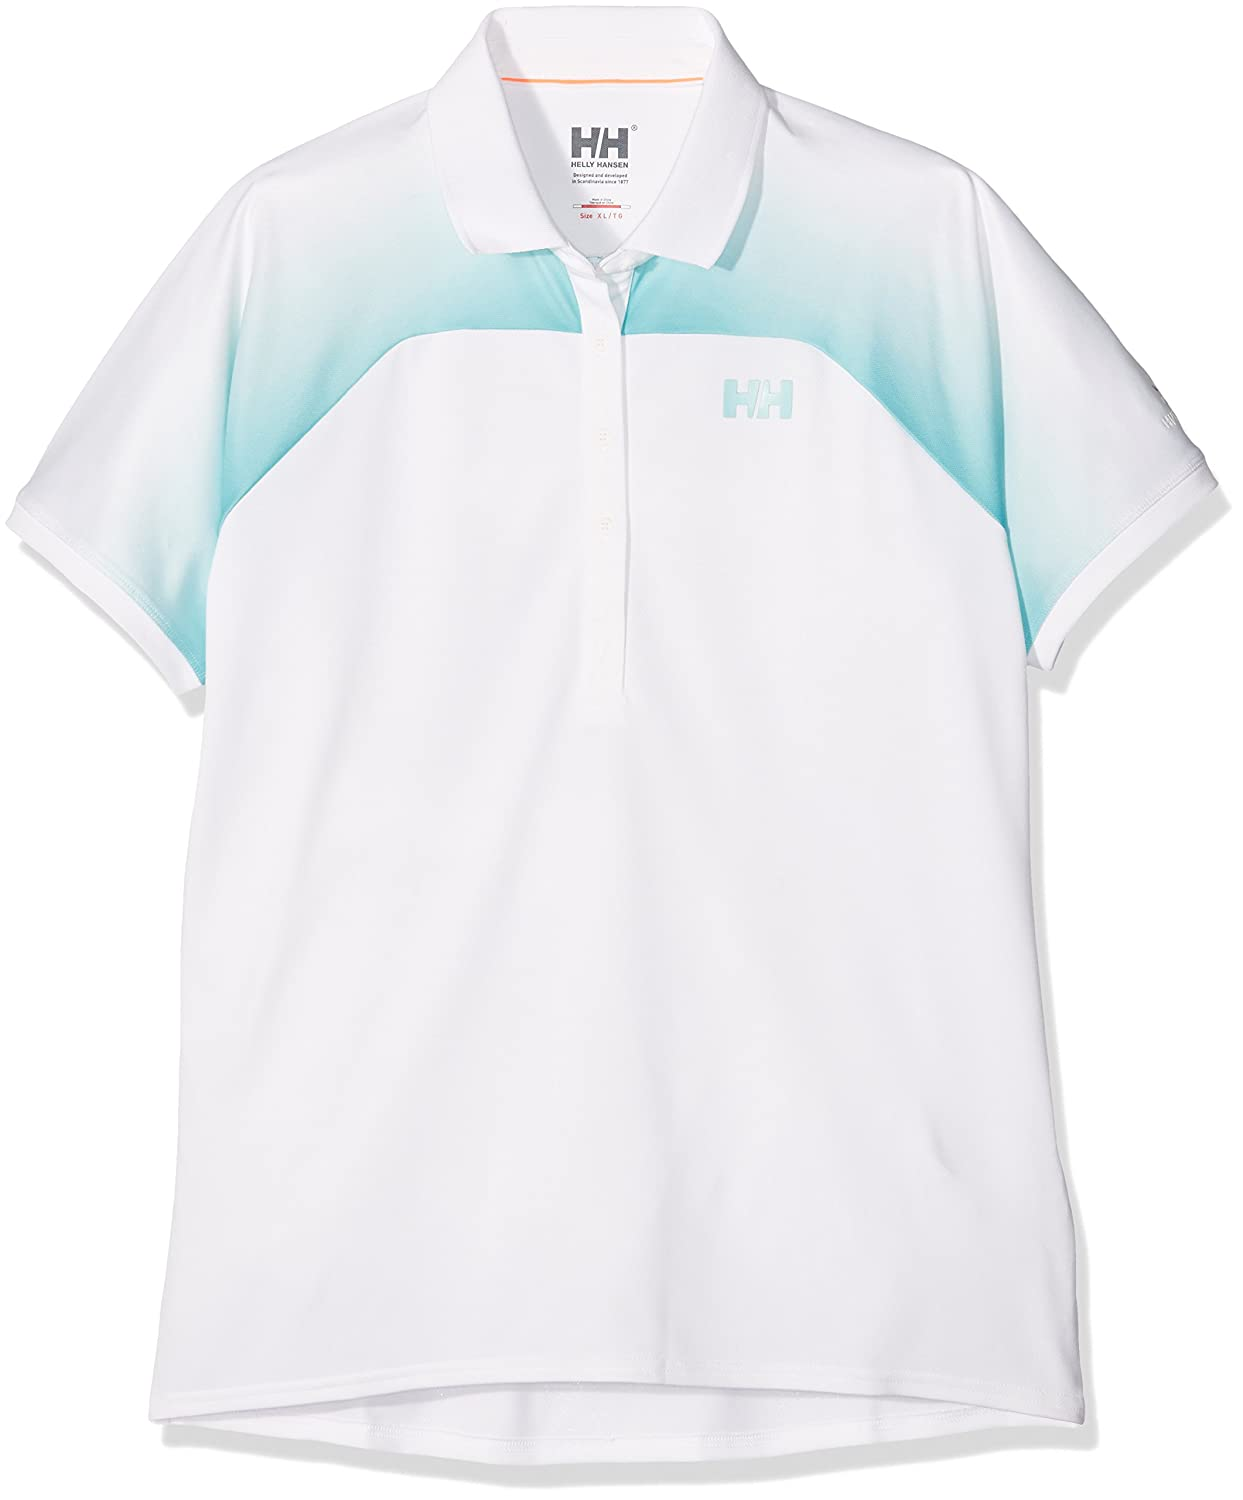 Helly Hansen HP - Polo para Mujer, Color Blanco, Talla XL: Amazon ...